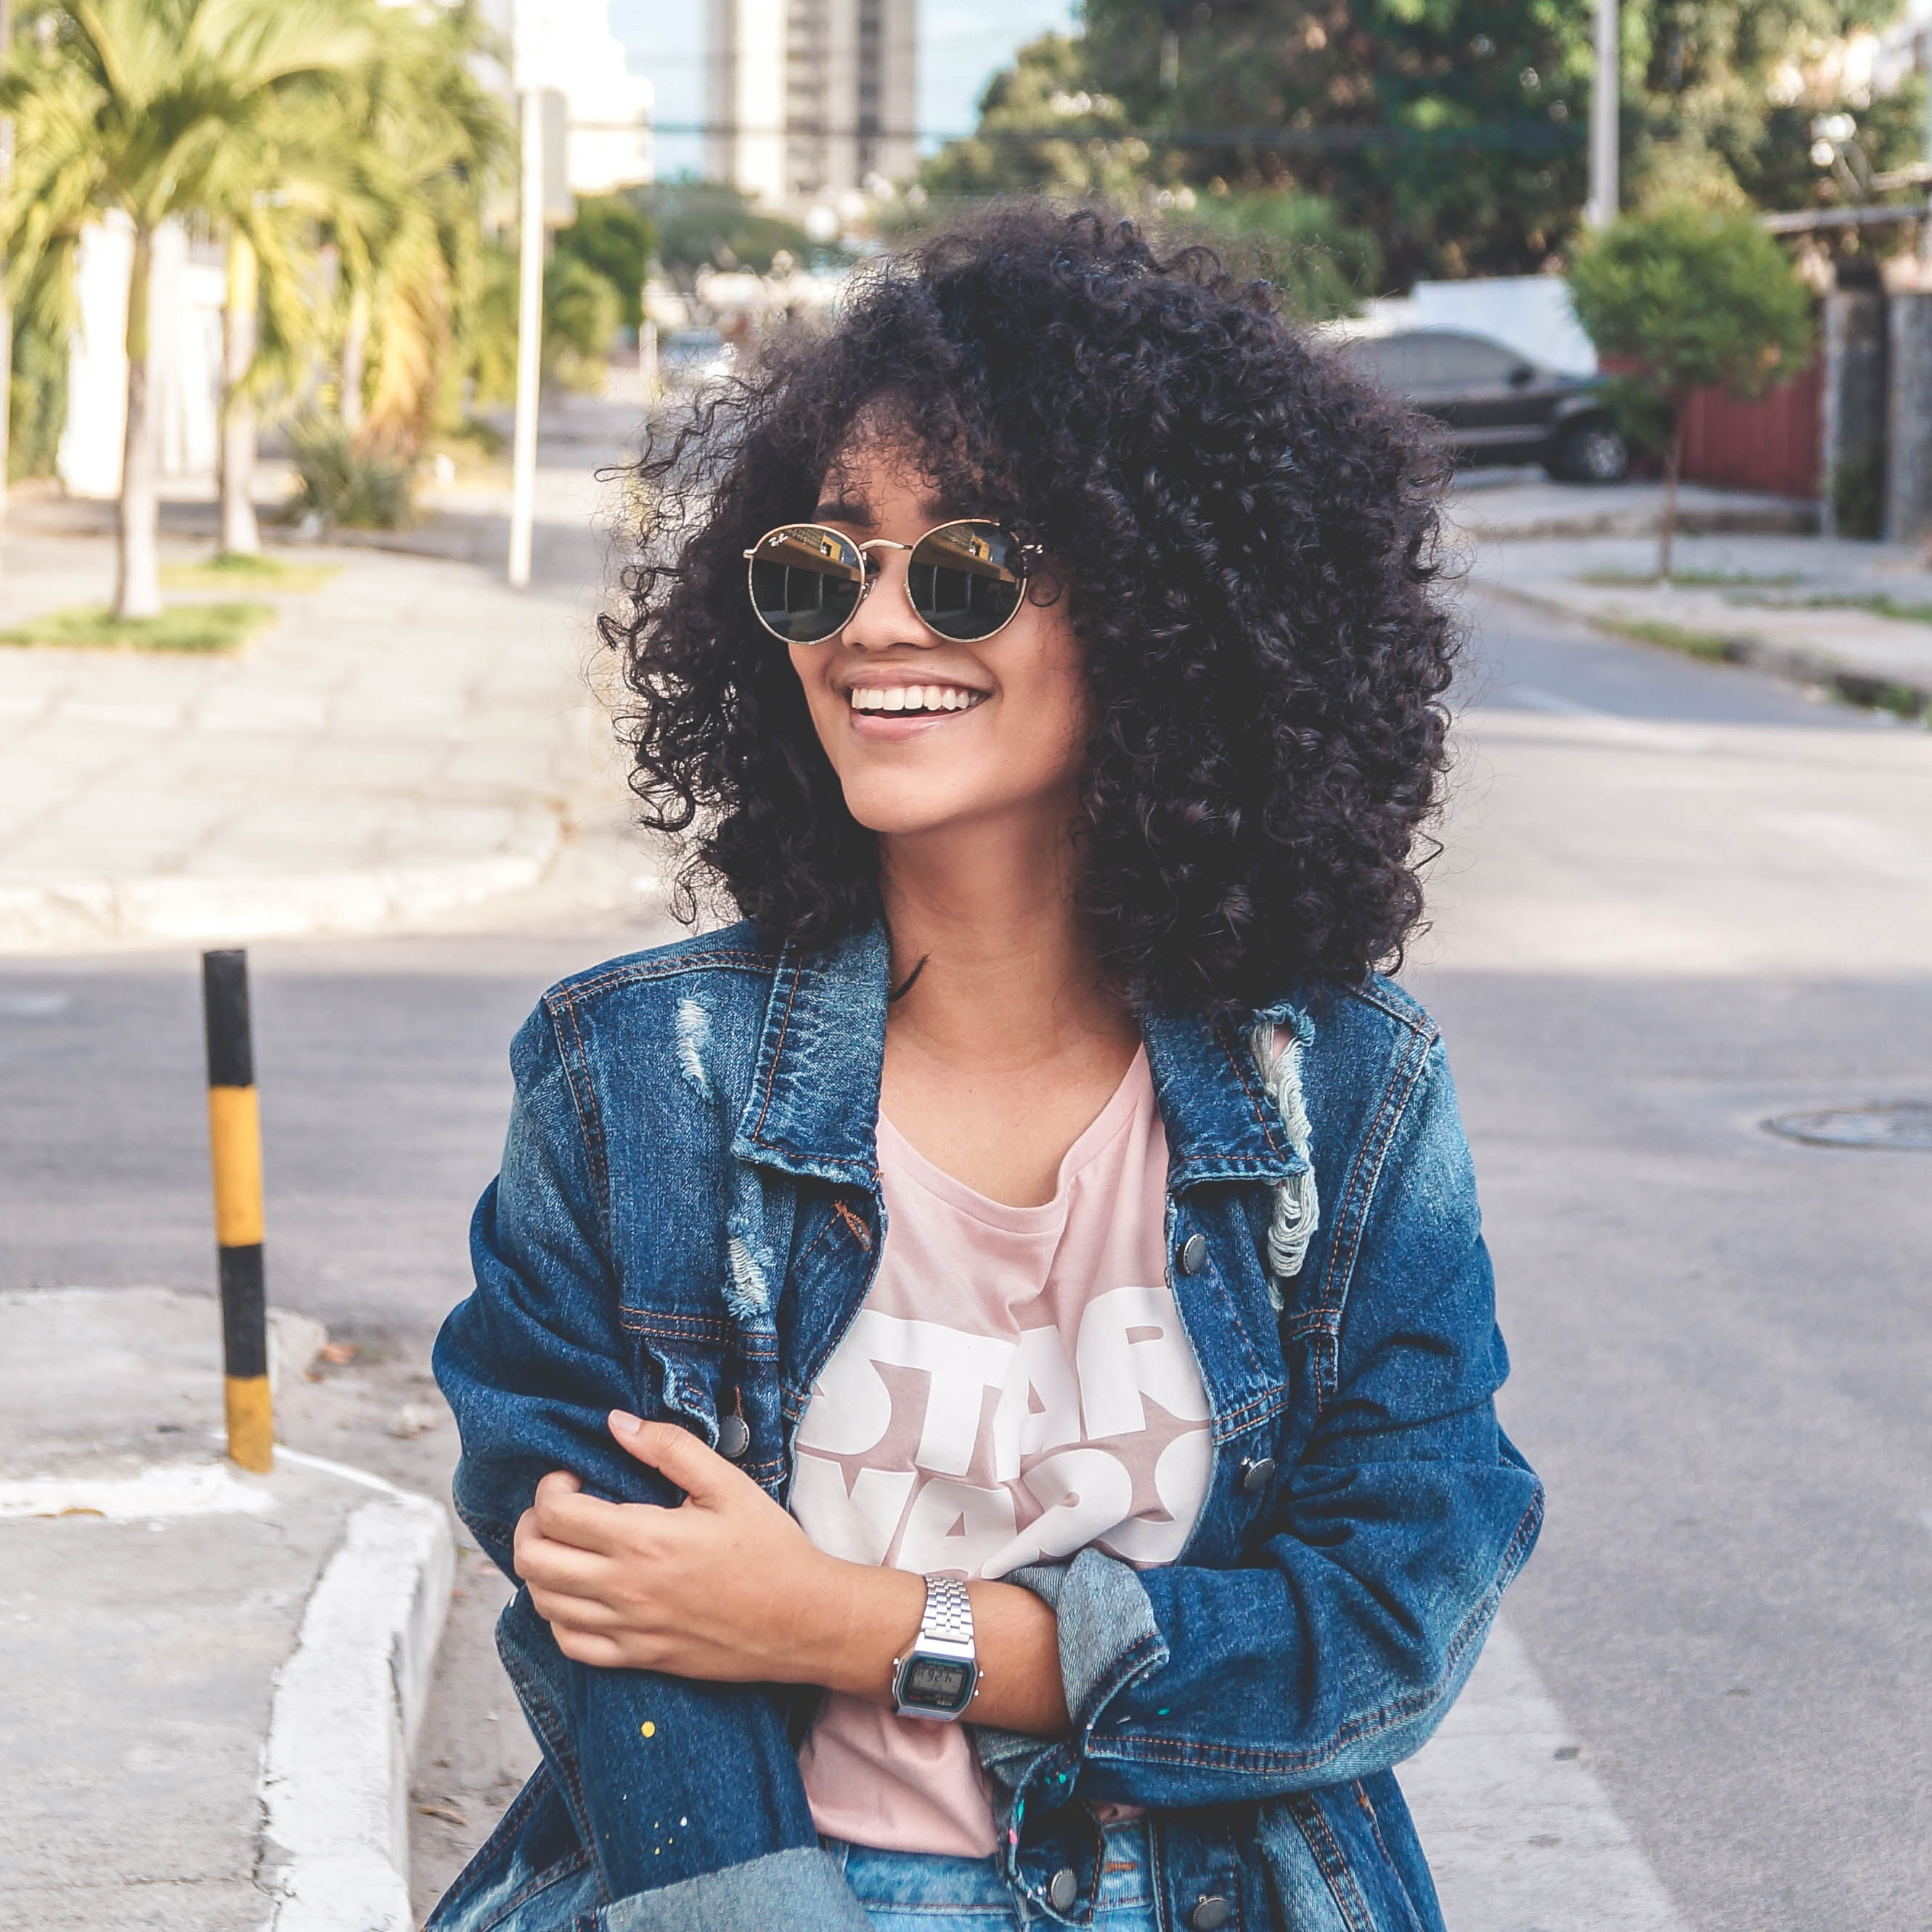 lady with curly hair wearing sunglasses